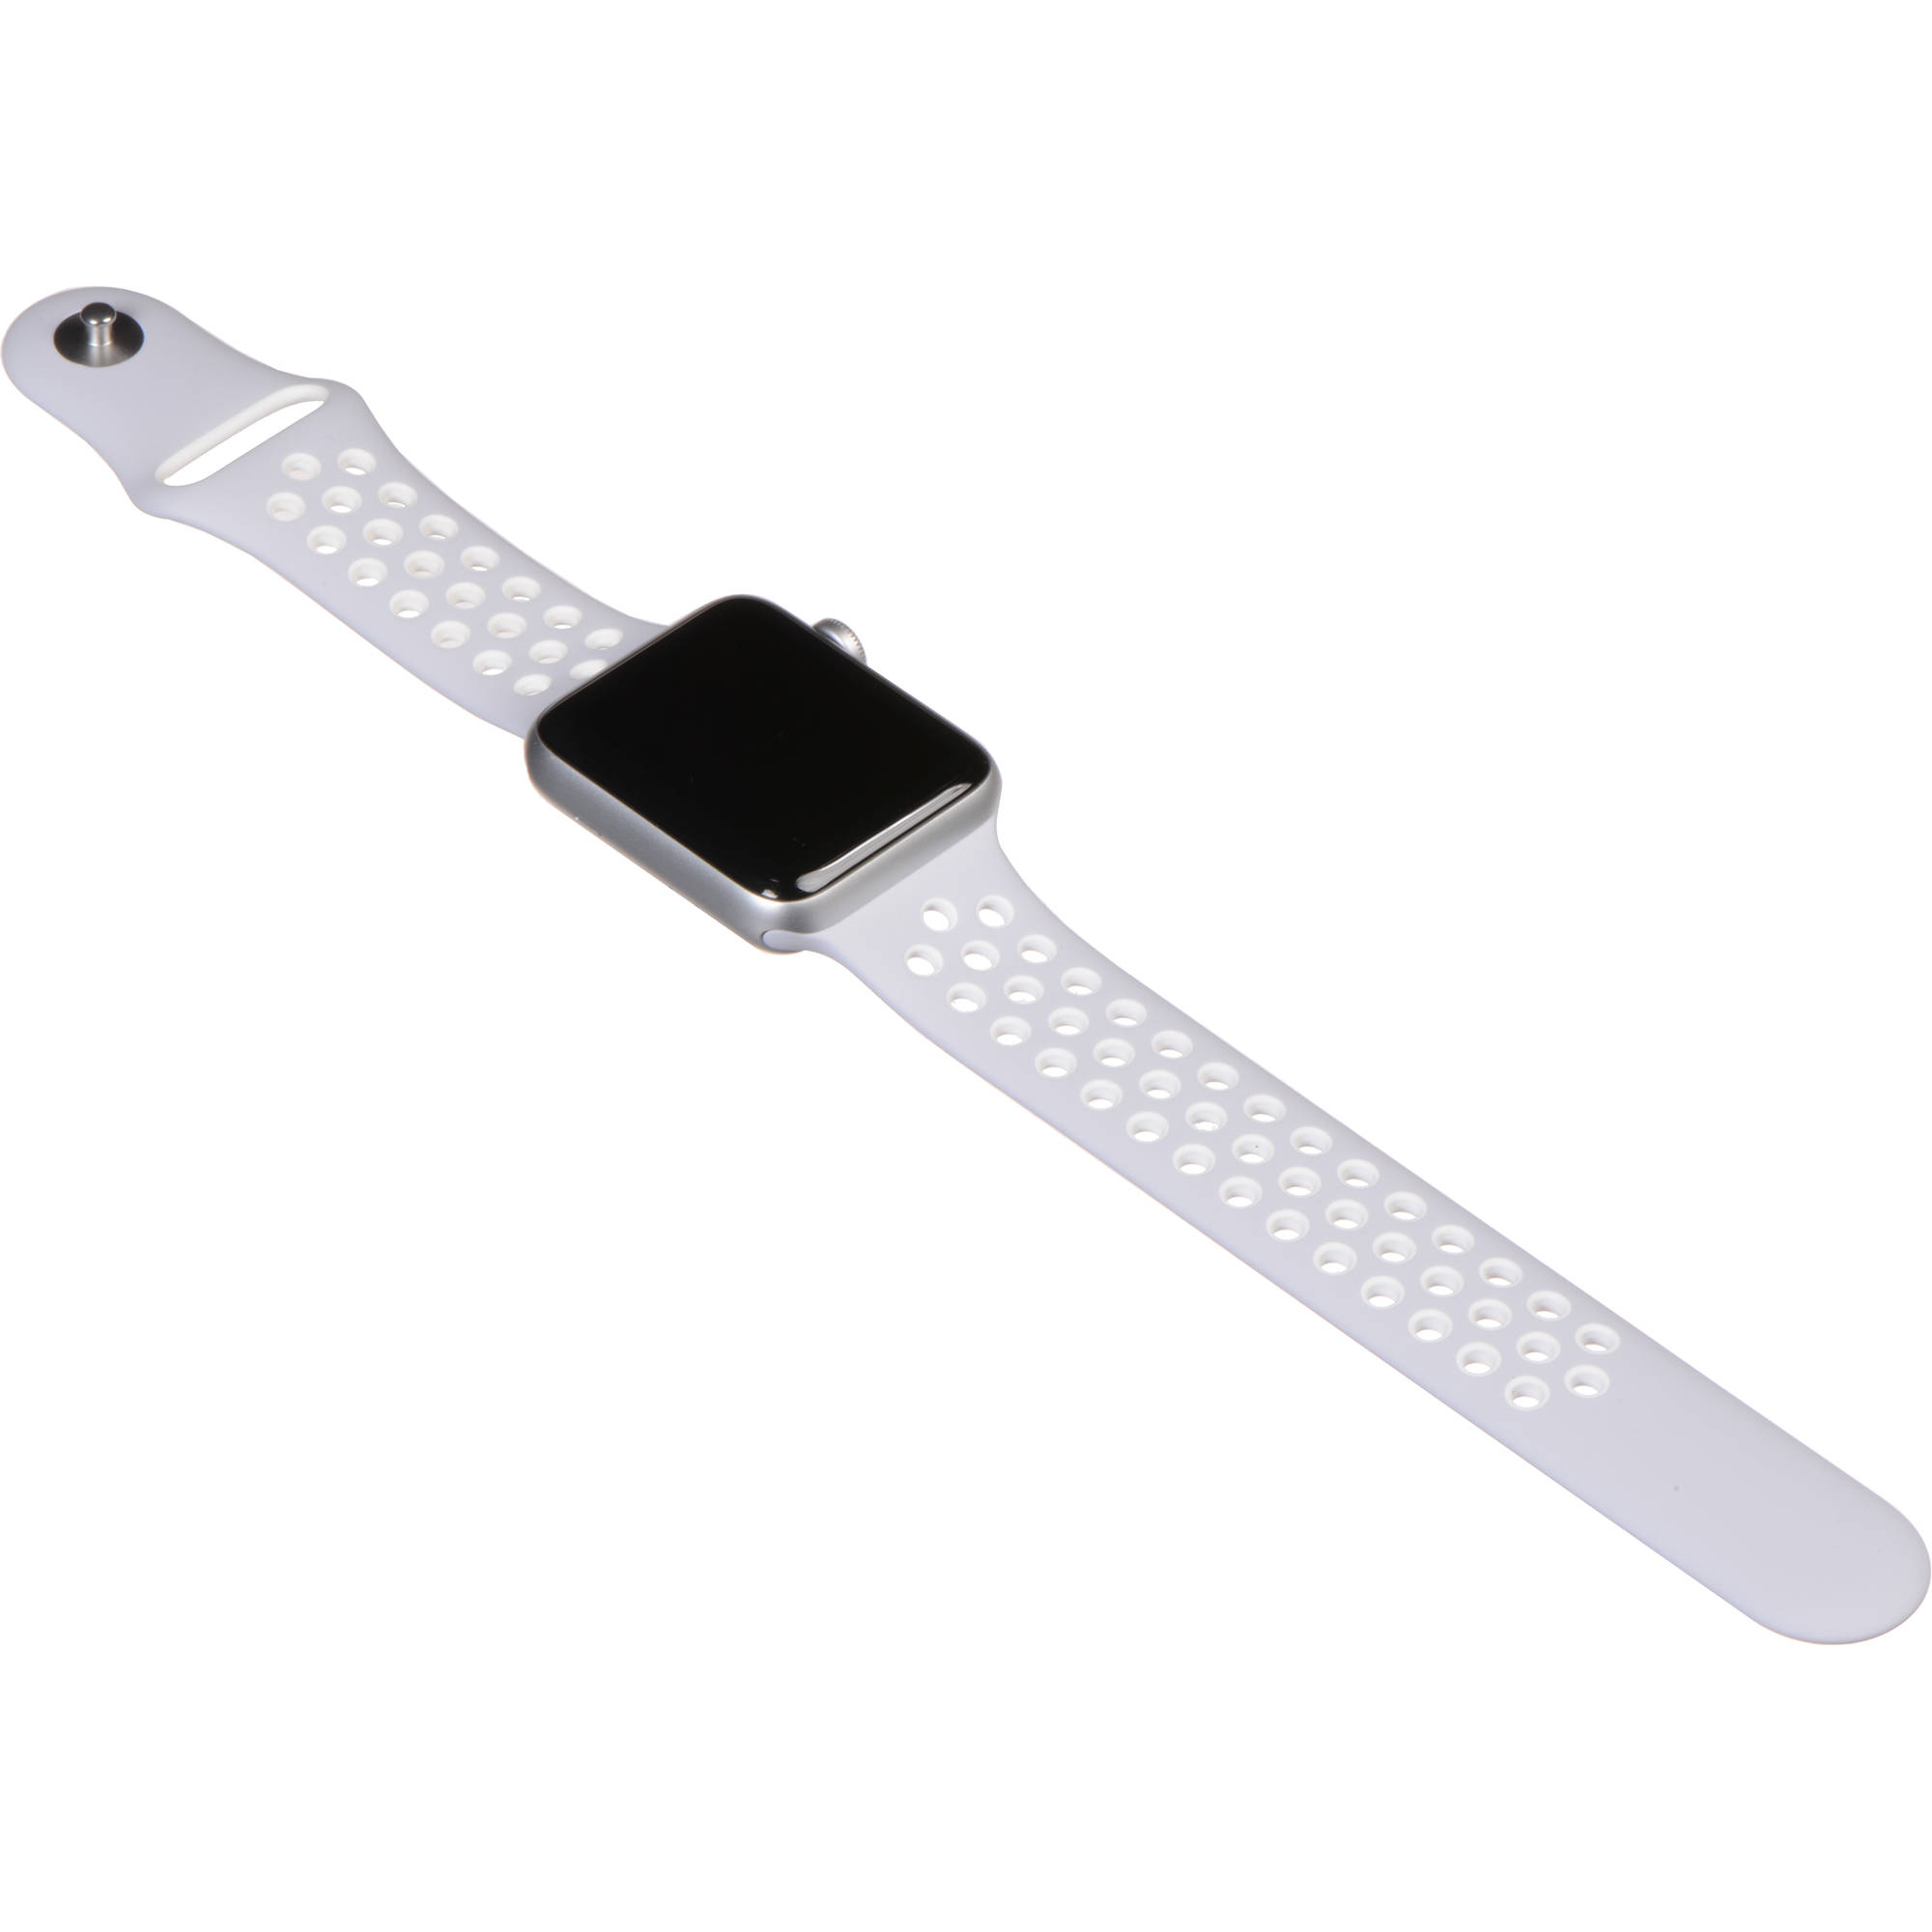 Ciudad Menda Activo Intolerable  Apple Watch Nike+ Series 2 42mm Smartwatch MQ192LL/A B&H Photo